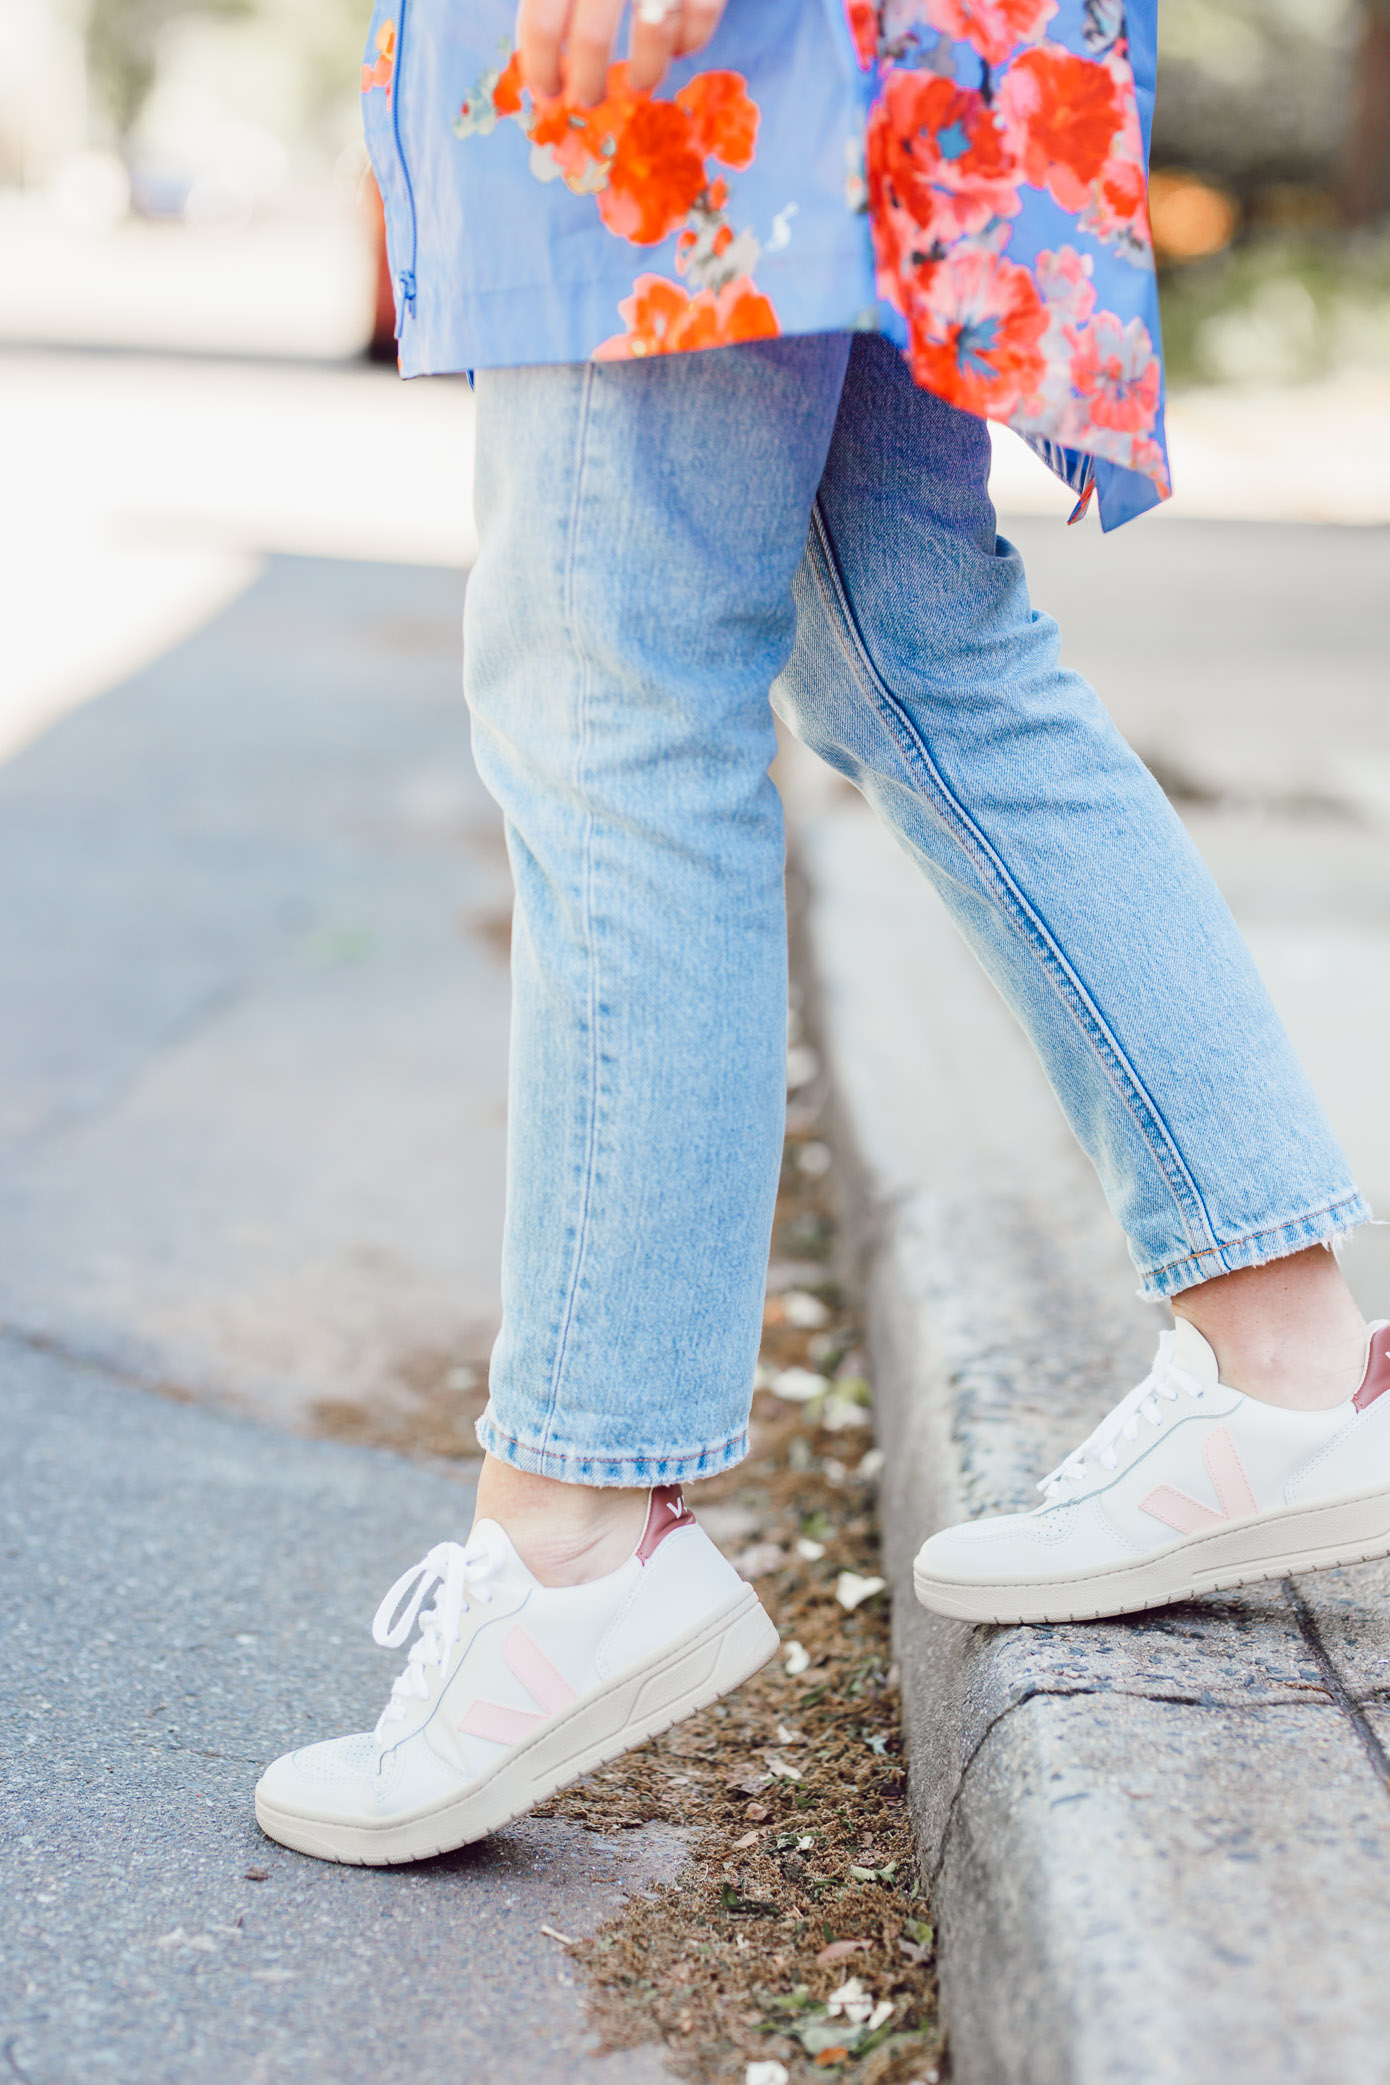 Laura Leigh of Louella Reese shares her favorite spring purchases of spring 2019 including the best white sneakers at a reasonable price